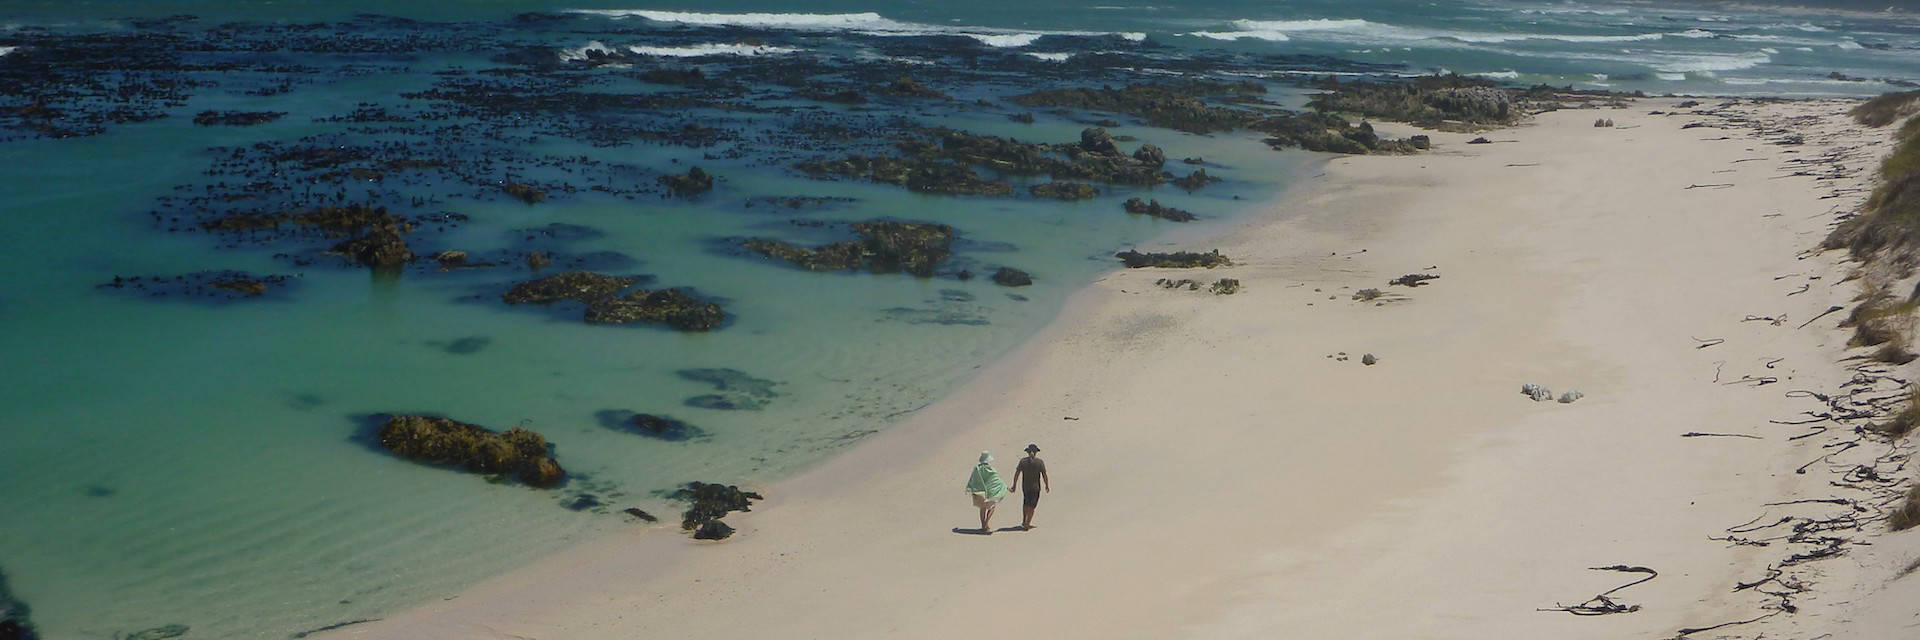 Walking on Pearly Beach South Africa